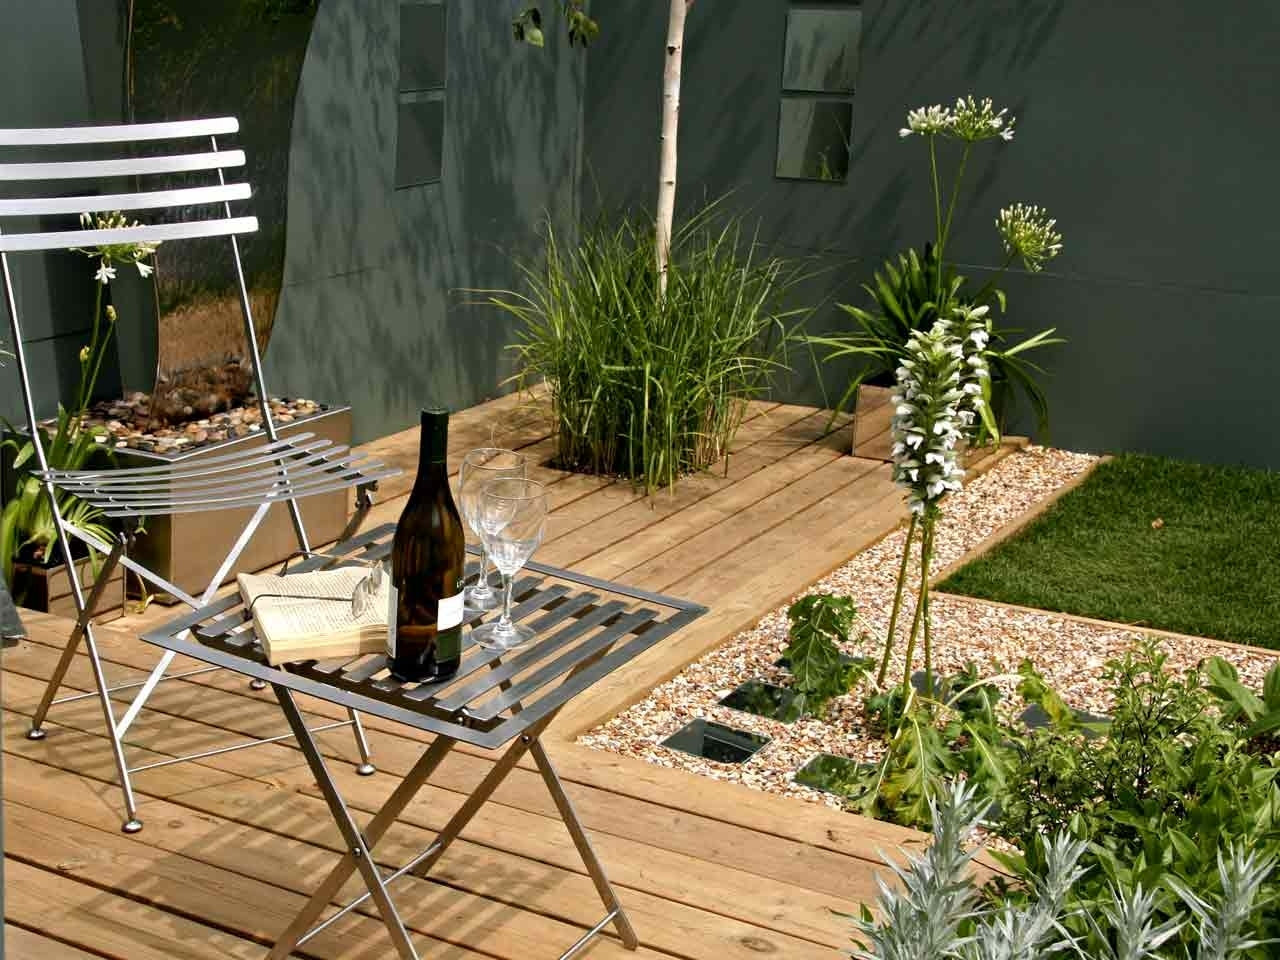 Small Garden Ideas And Inspiration - Saga with Small Garden Ideas